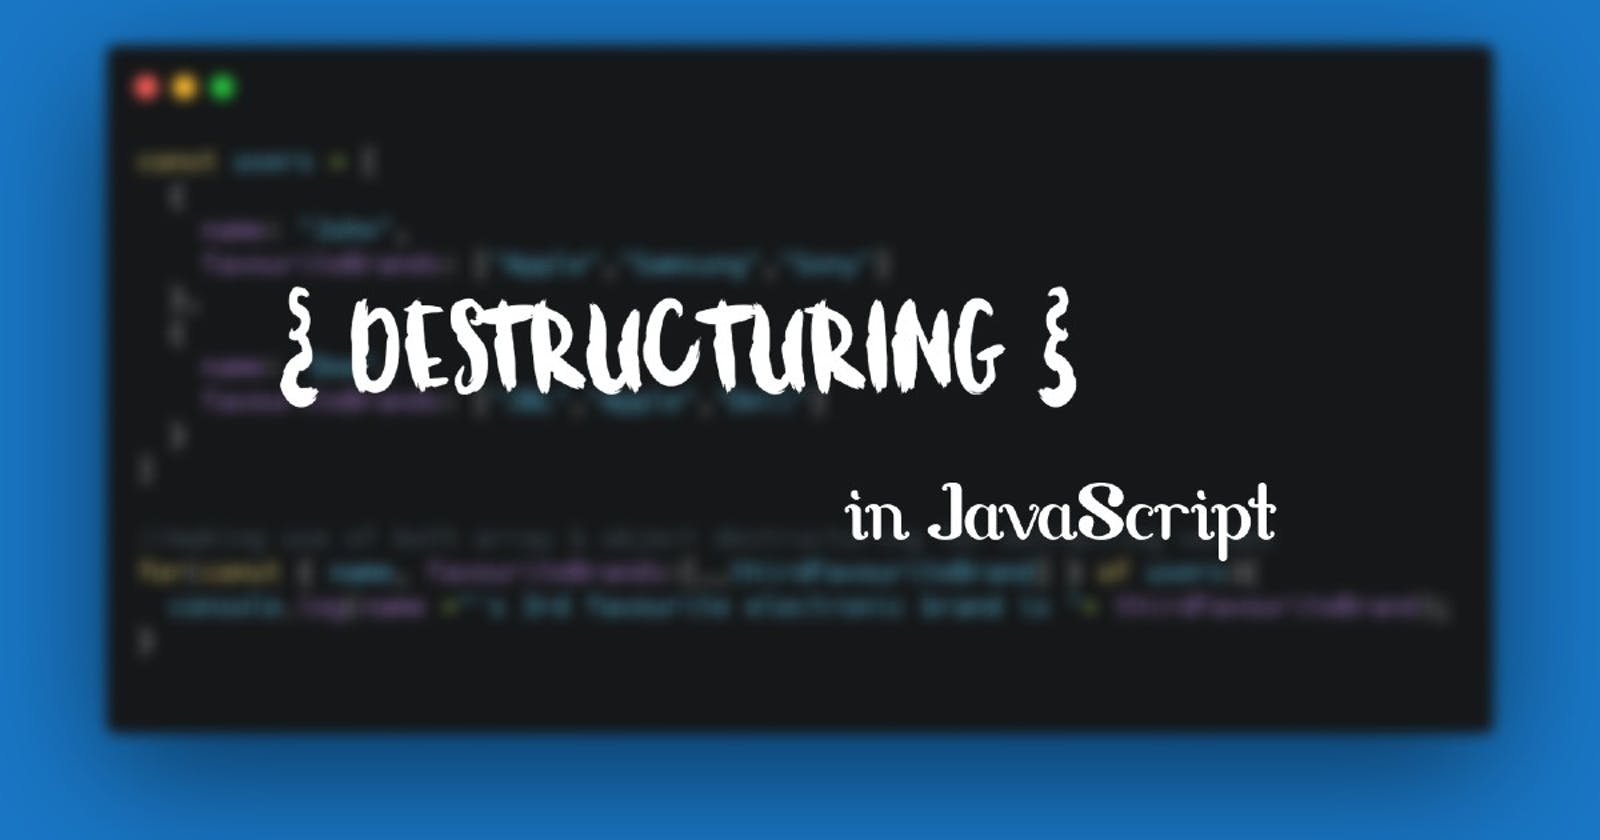 Demystifying destructuring in JavaScript: A look into object & array destructuring